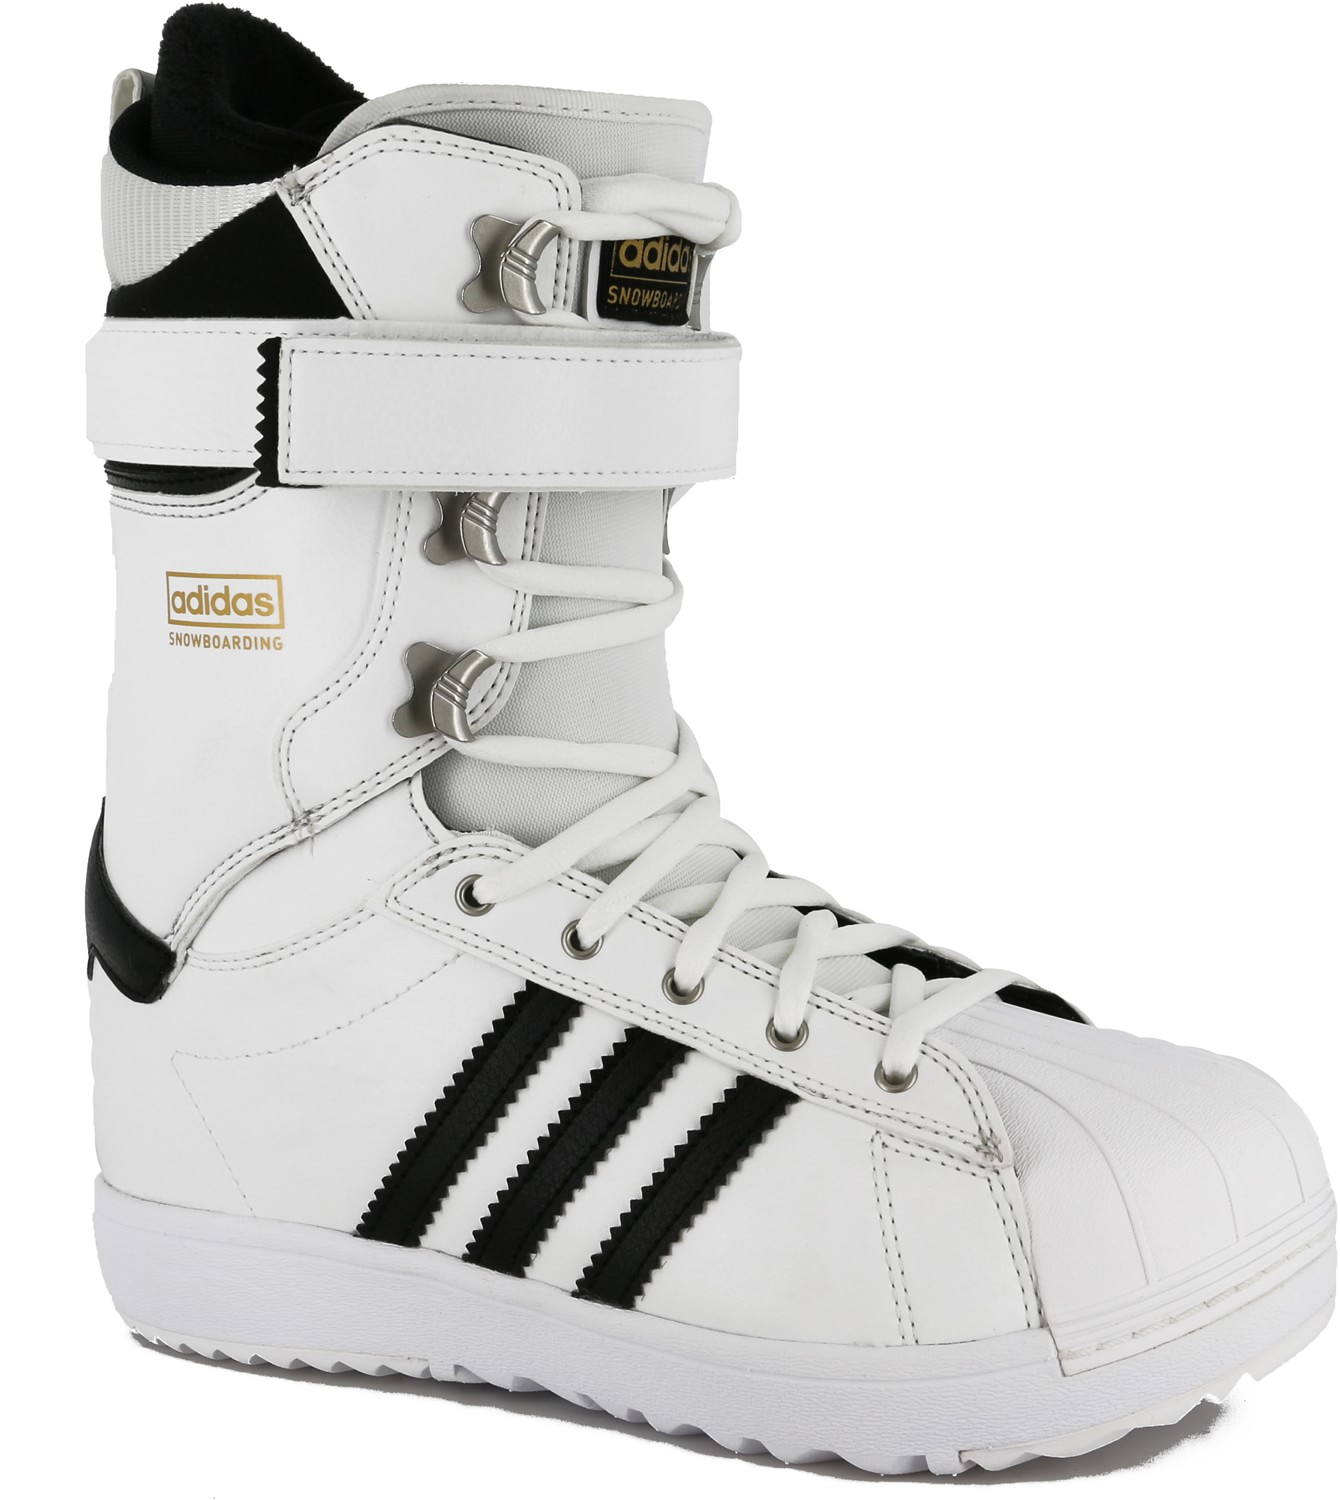 adidas the superstar boots